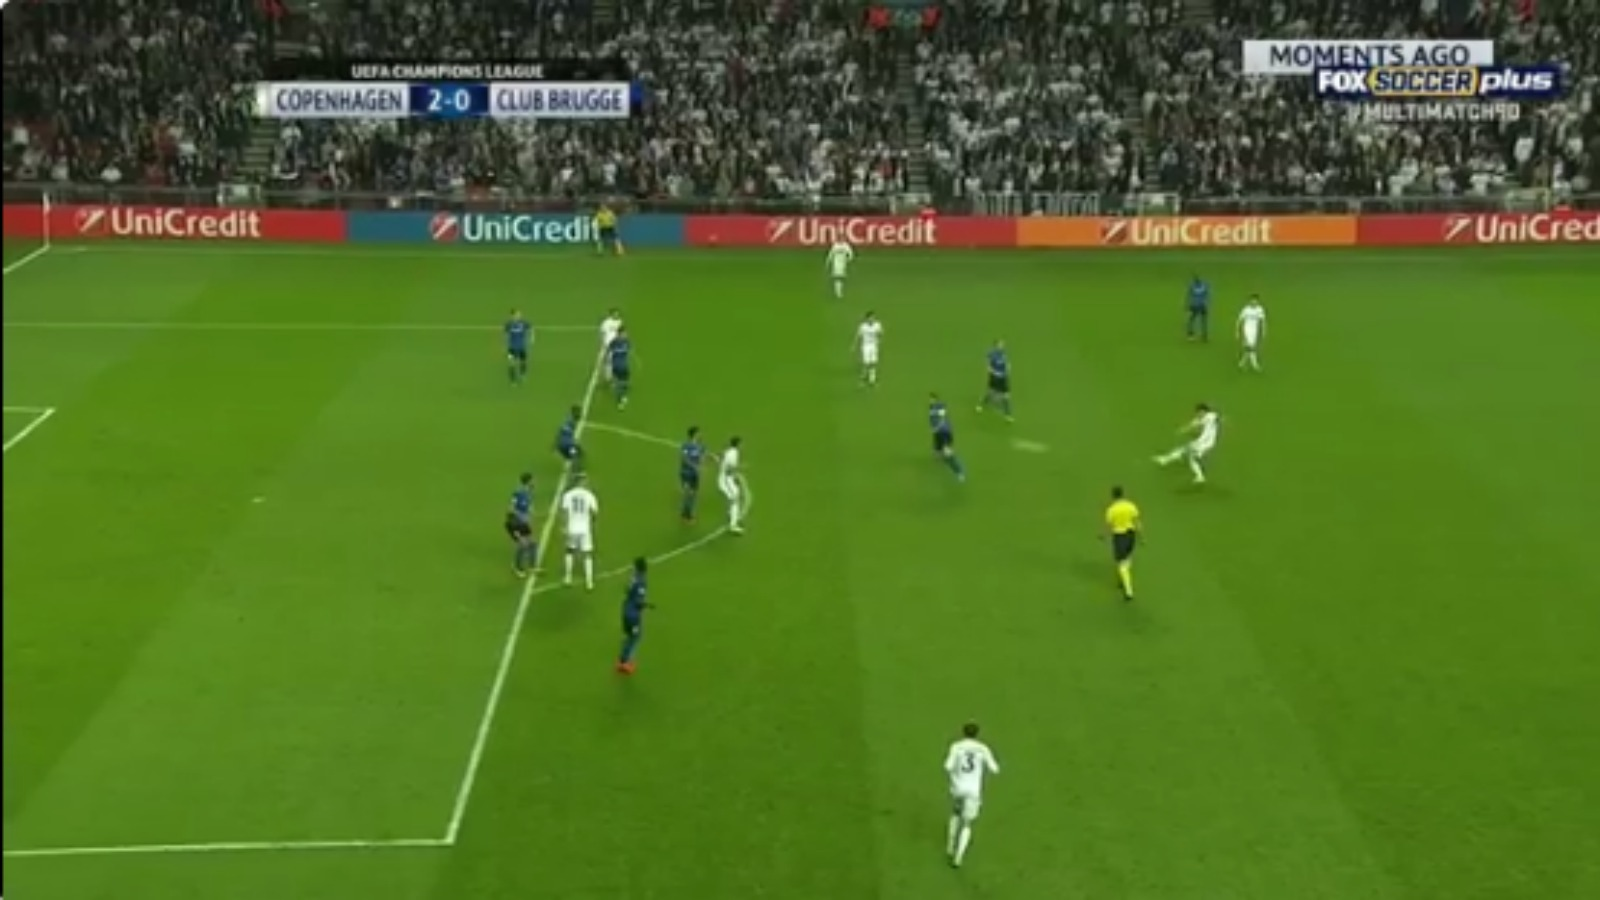 Watch Thomas Delaney stake his claim for Champions League goal of the season